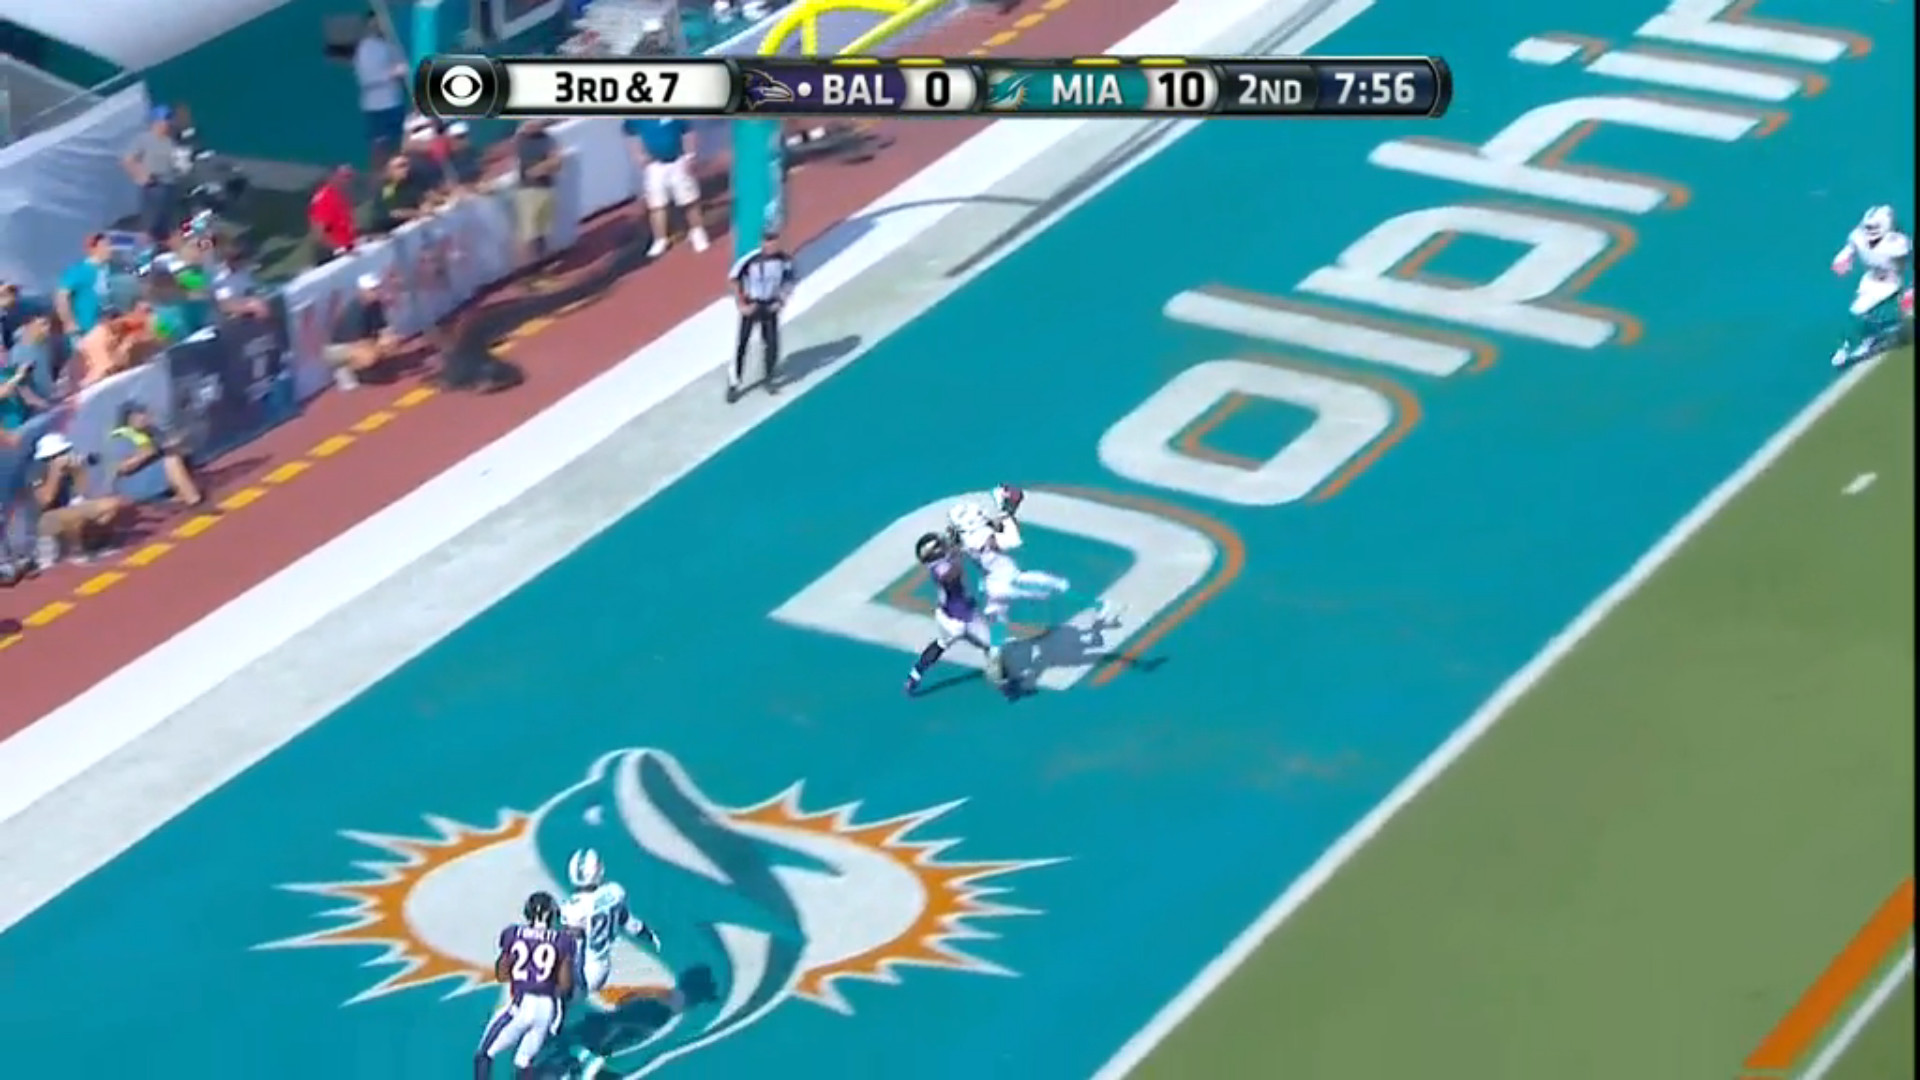 1920x1080 Ravens at Dolphins halftime report: Miami leads 10-7 at midway point